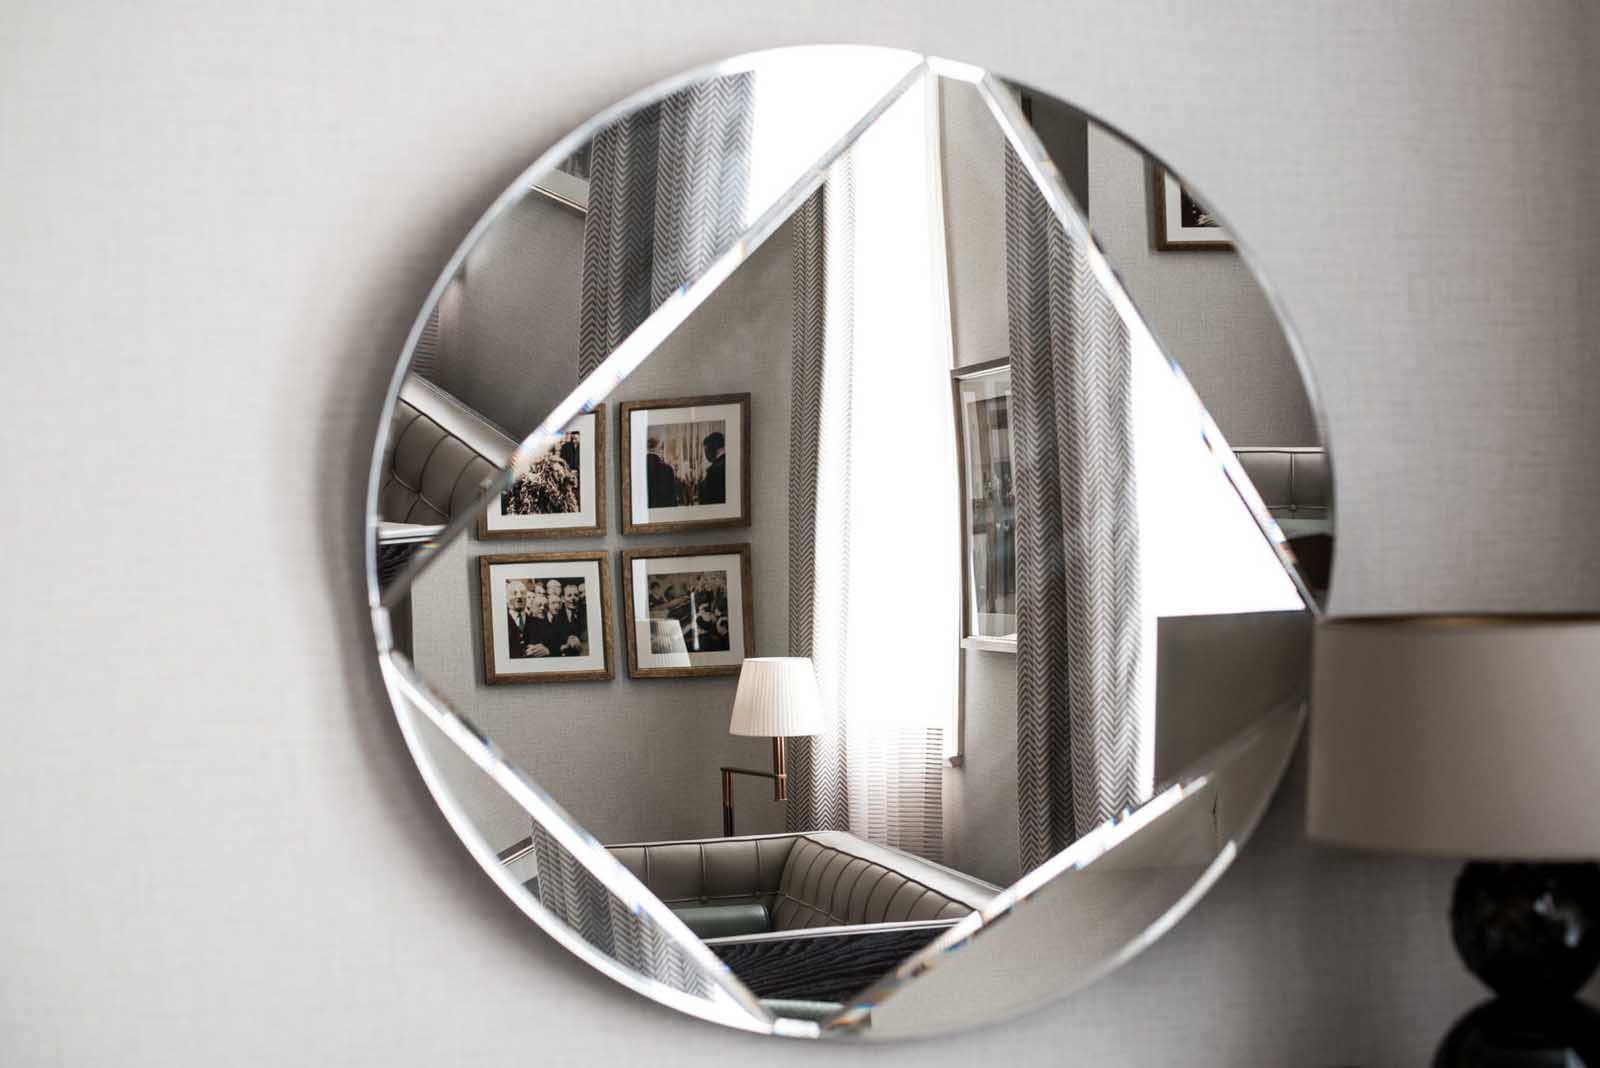 Circular mirror with a reflection of pictures hung on the wall